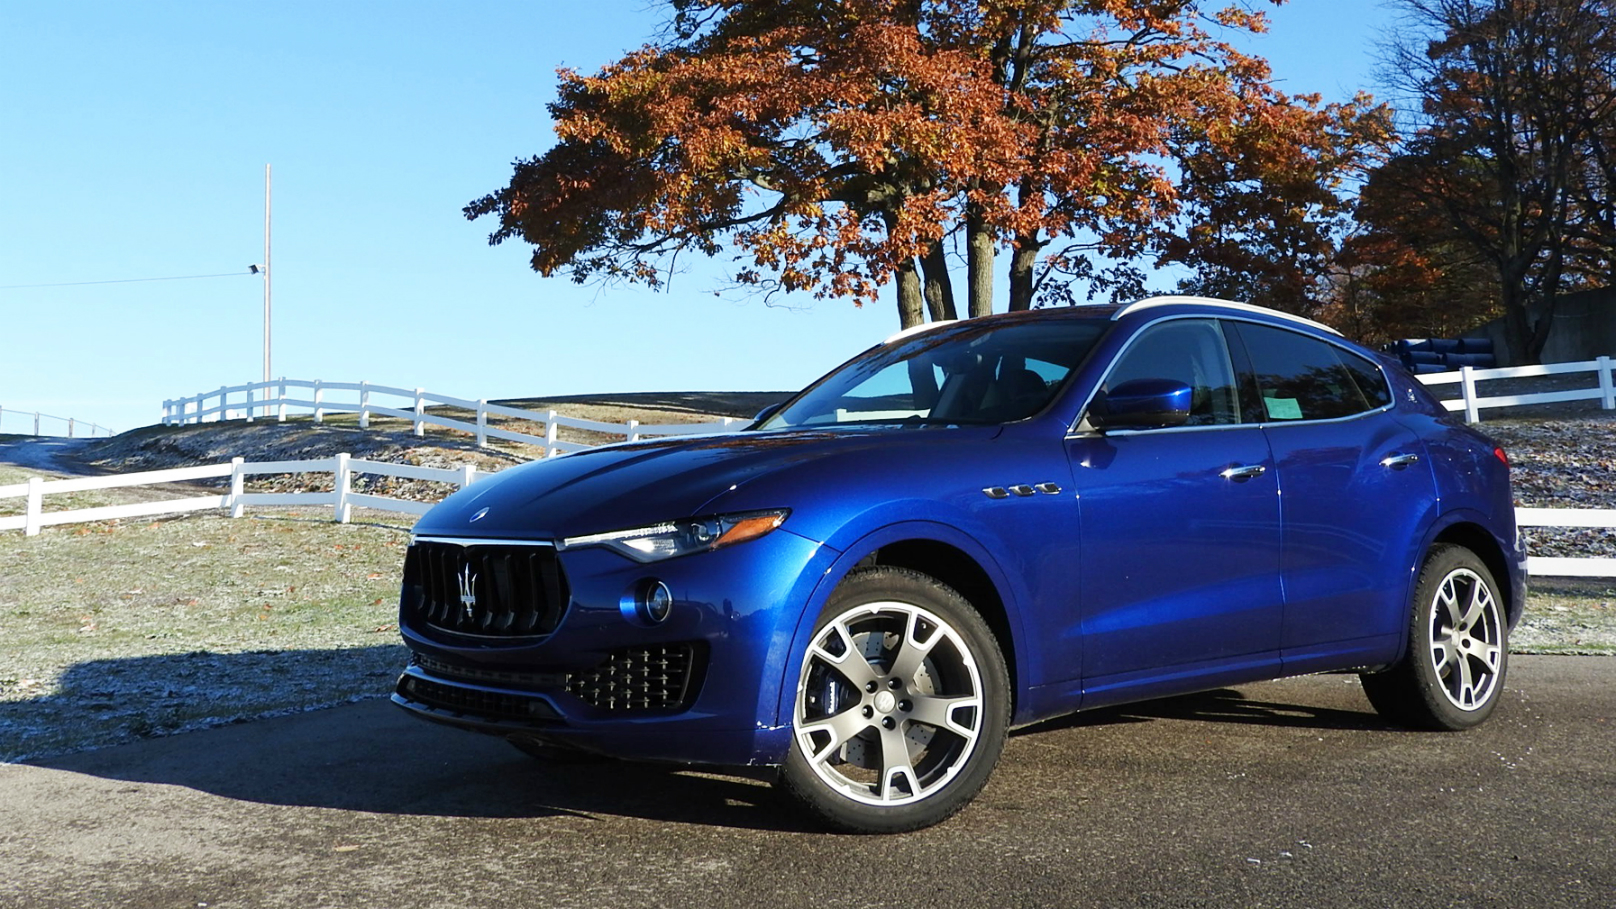 Jaguar S F Pace Suv Worth The Wait Wheels Ca